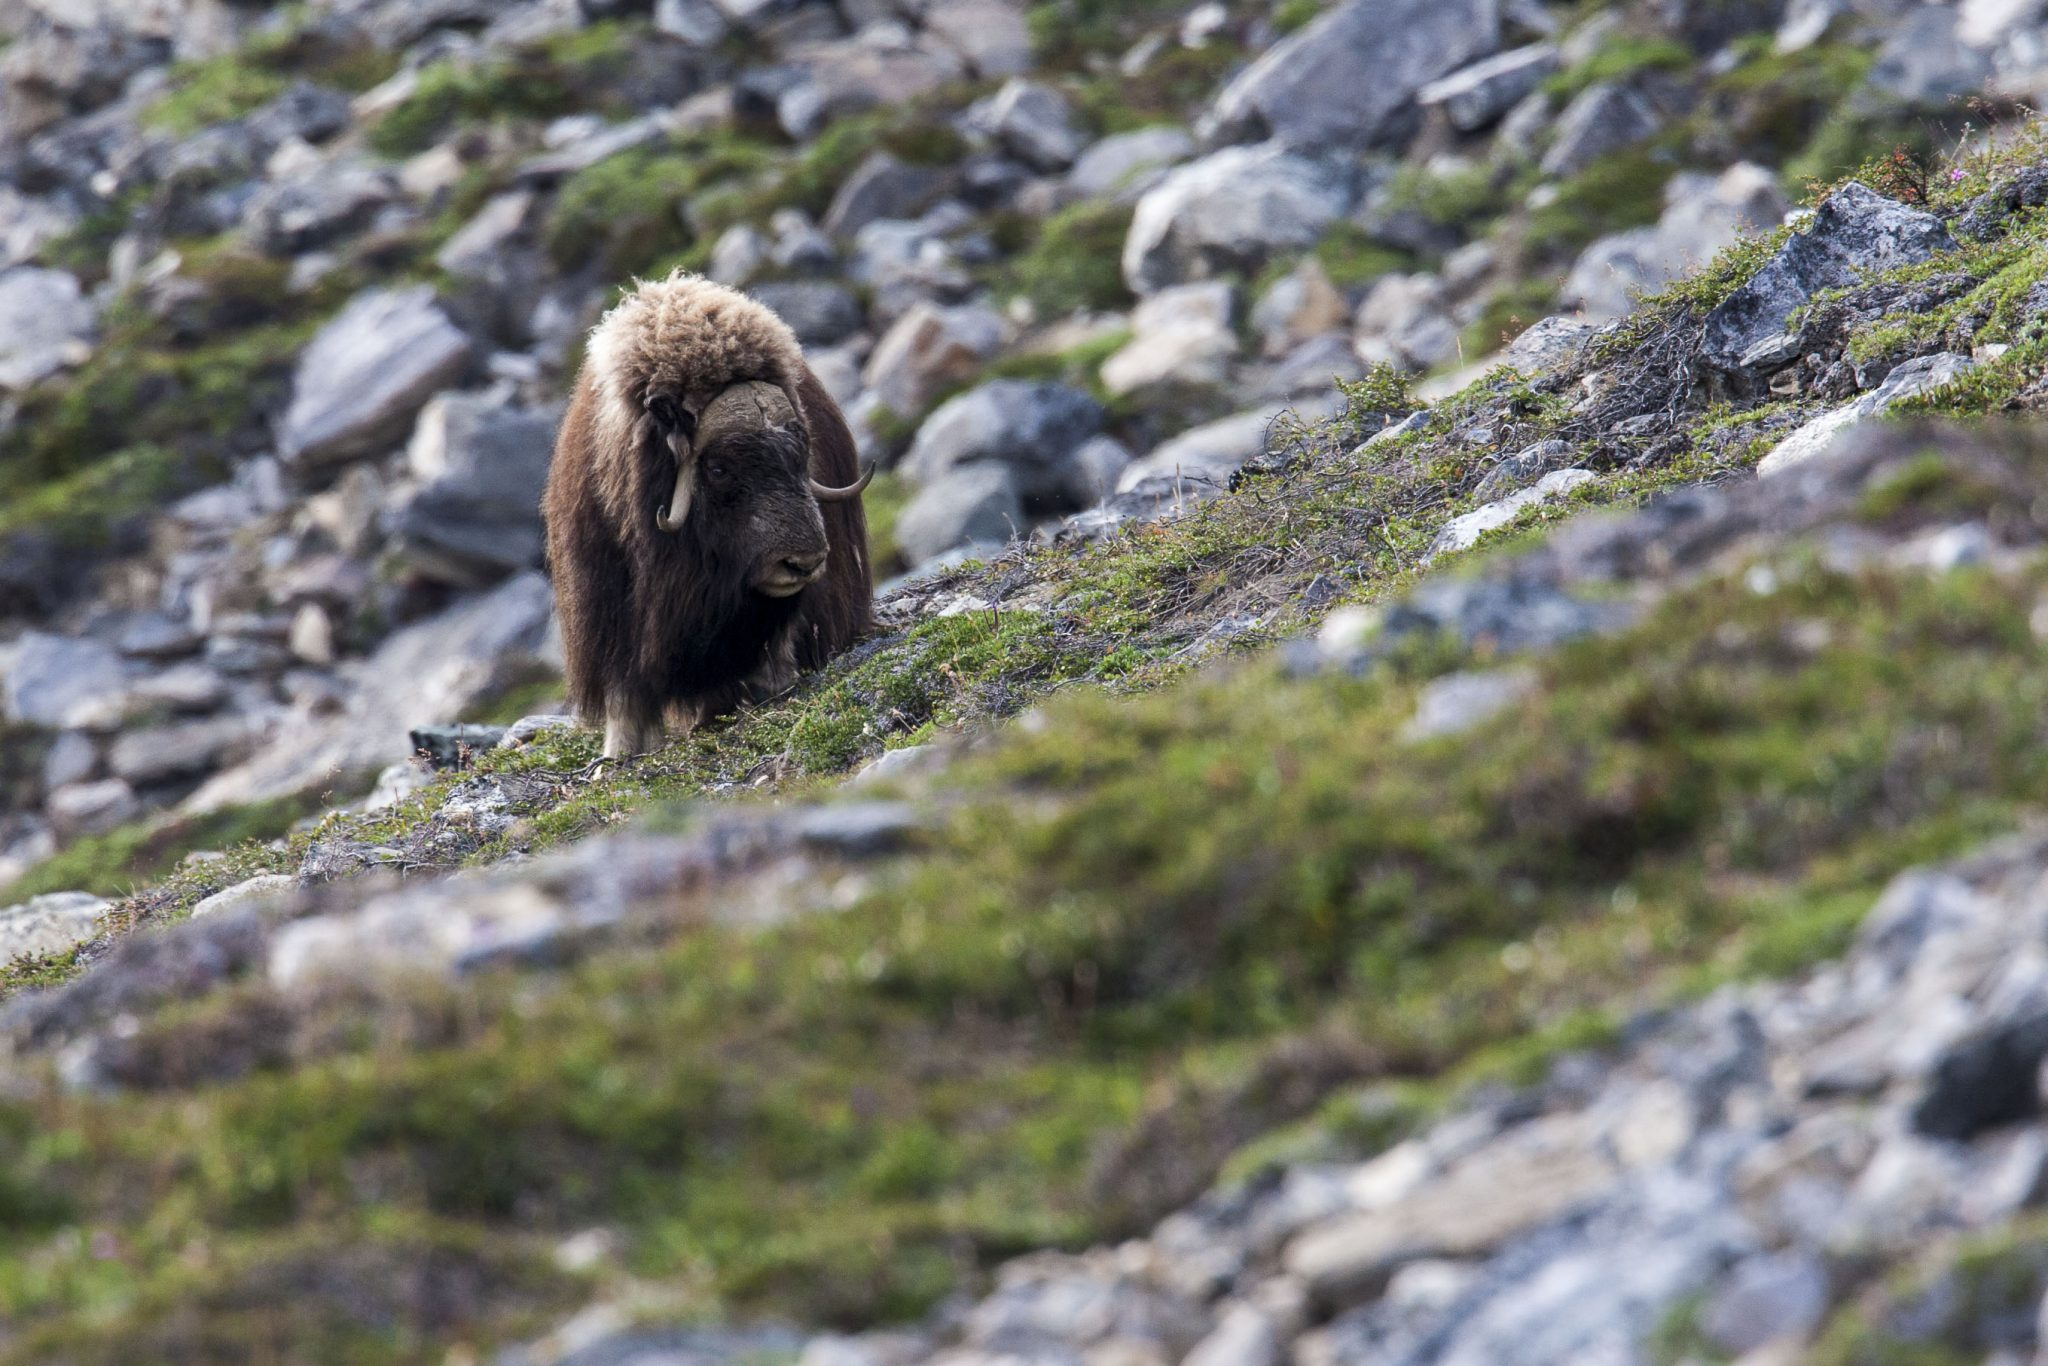 Musk Oxen in Greenland - copyright north winds photography